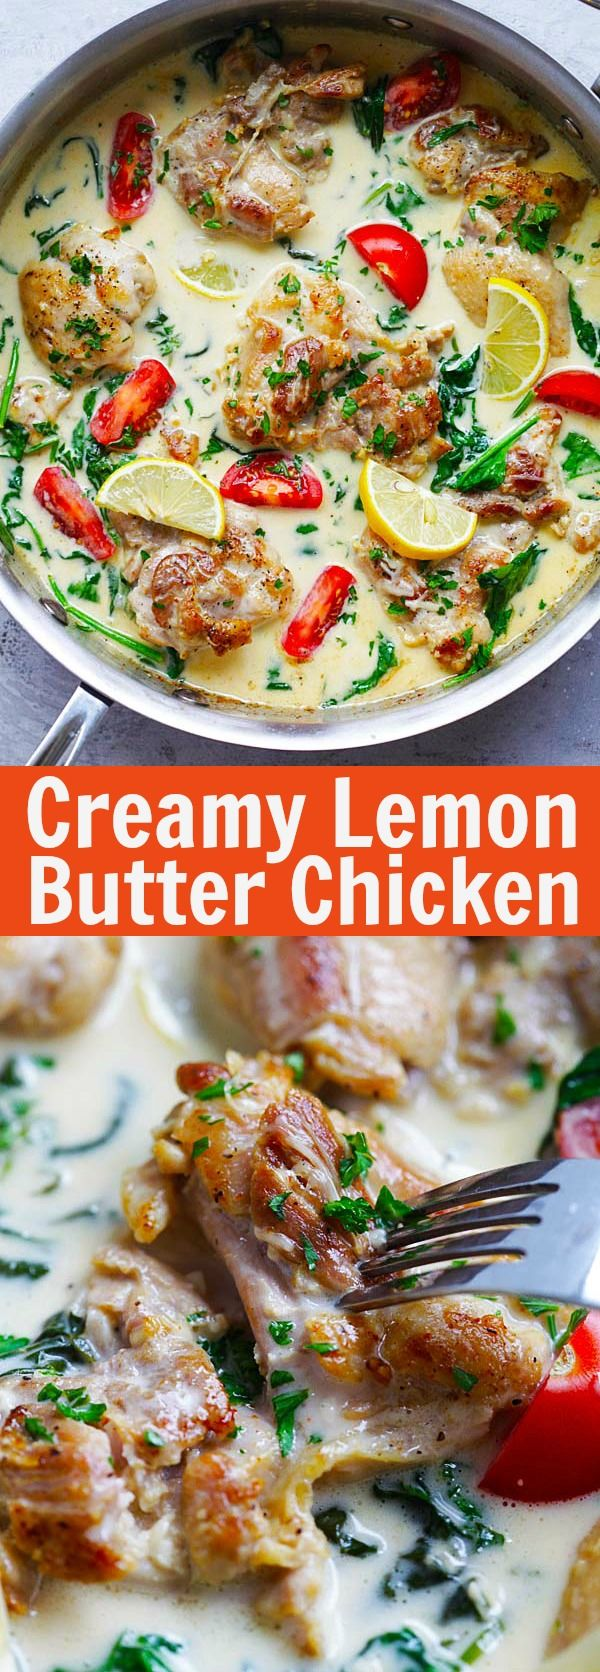 Lemon Butter Chicken - juicy and moist pan-fried chicken in a super creamy, lemony and cheesy white sauce, with spinach and tomatoes   rasamalaysia.com